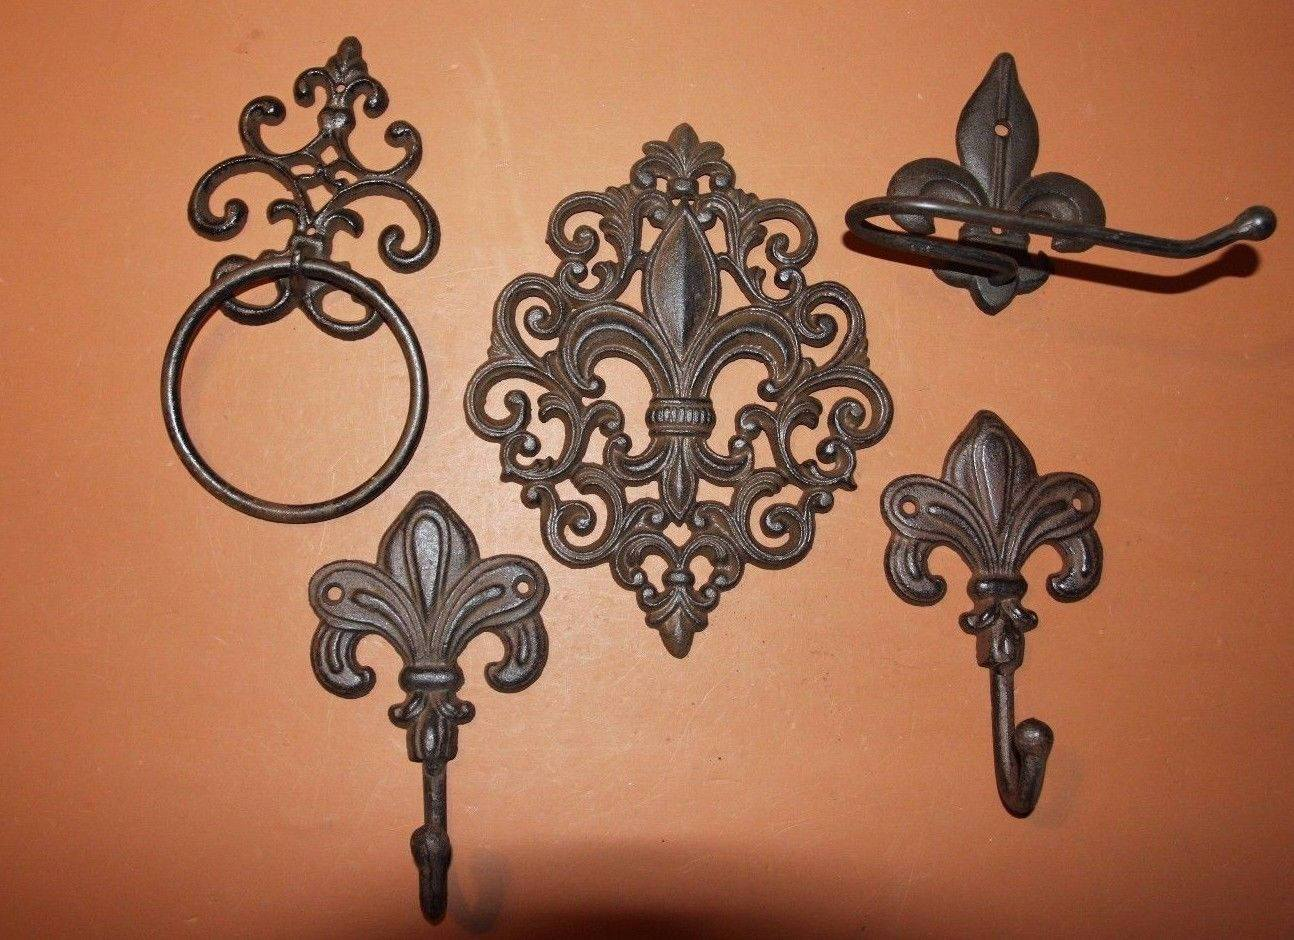 Classic Fleur De Lis Vintage Design Cast Iron Bath Accessories, Toilet Paper Holder, Towel Ring, Towel Hooks, Monroe, Set of 5